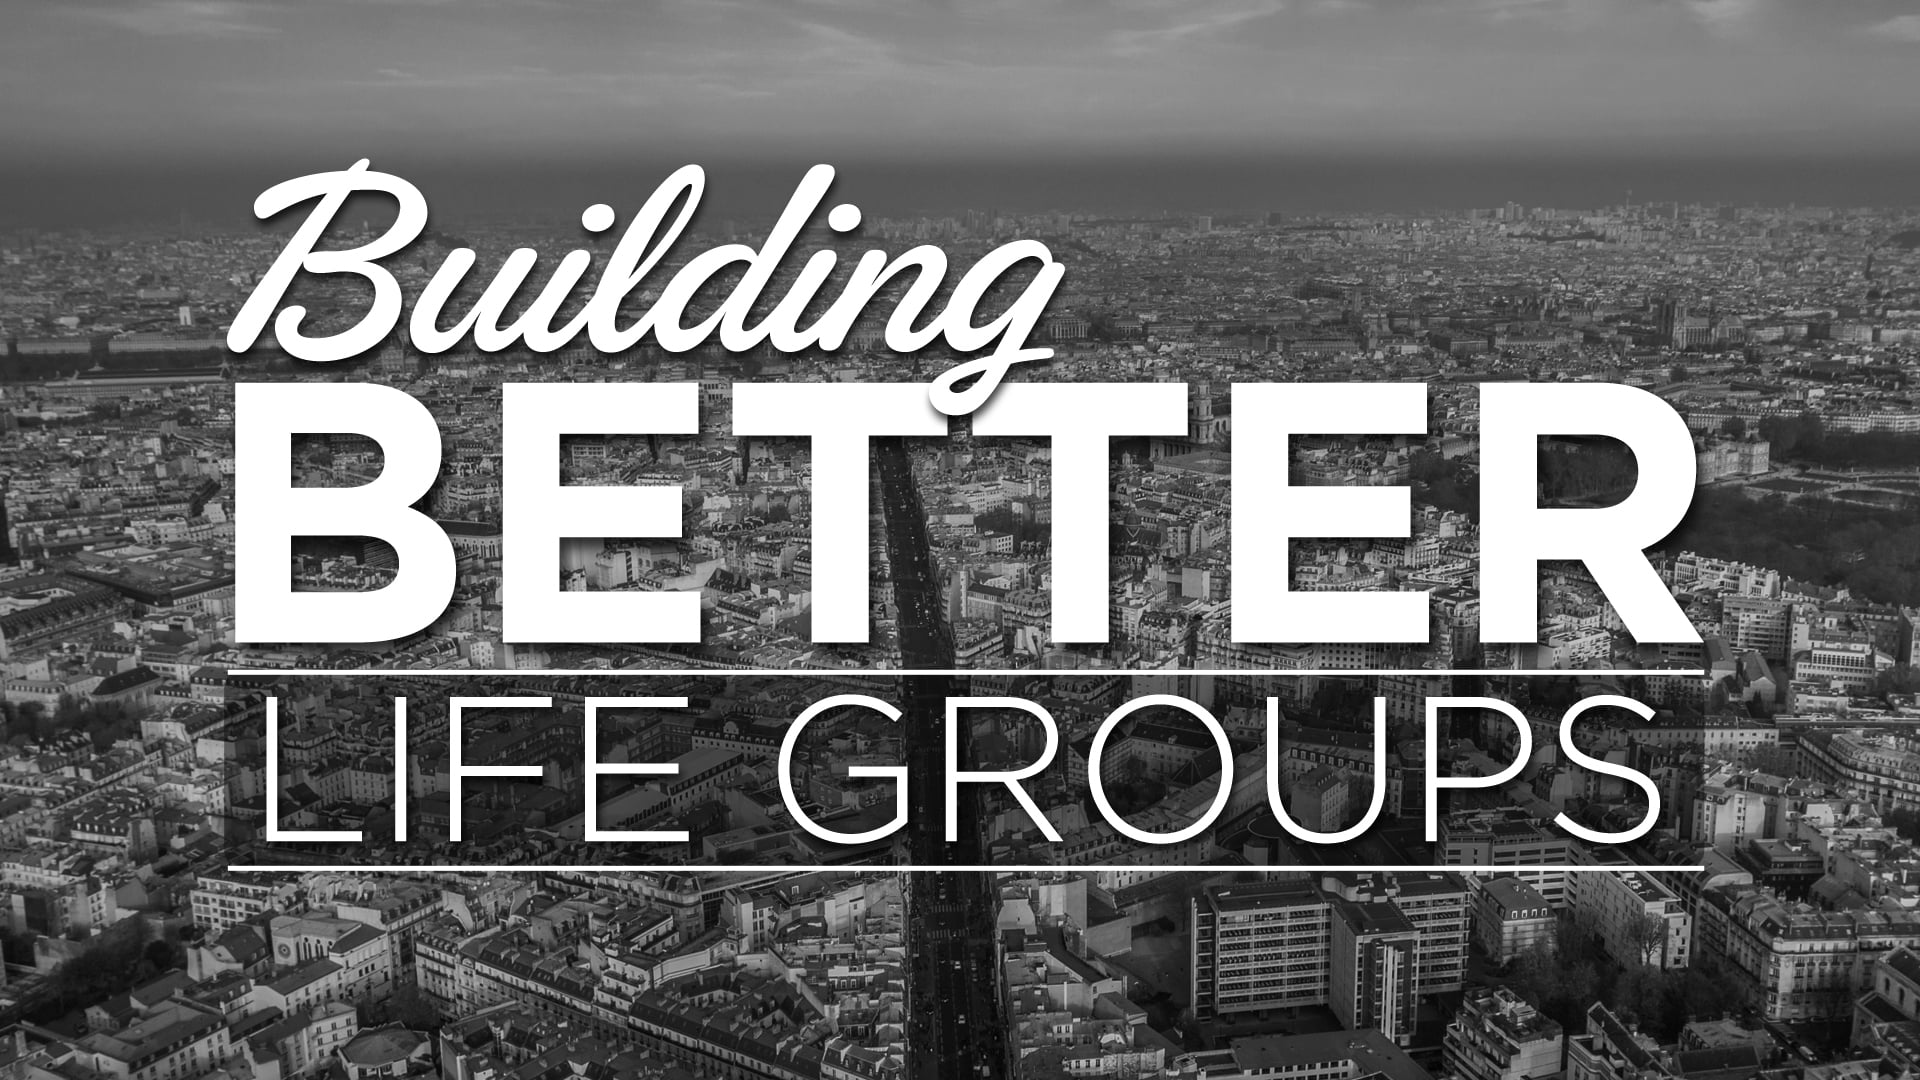 Life groups [1] - What's the Big Deal?